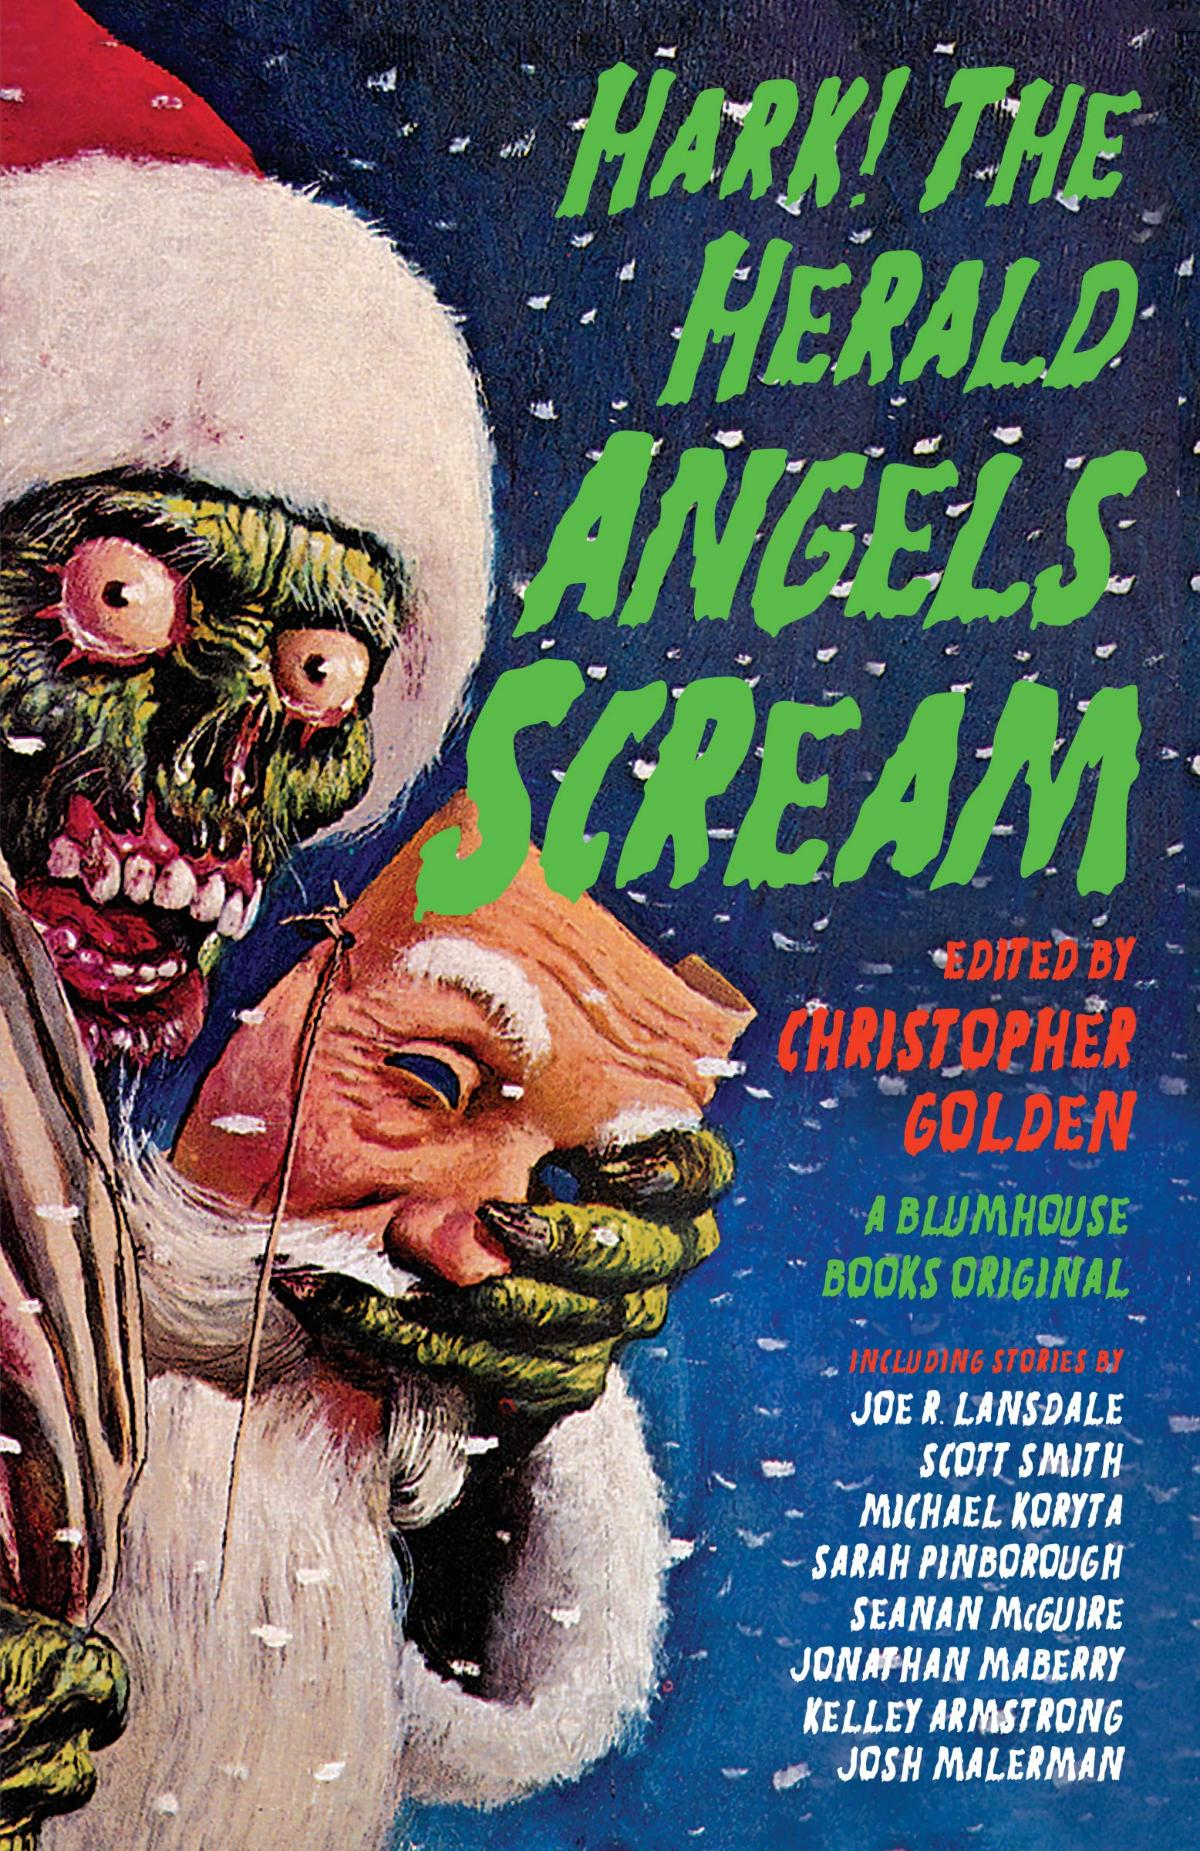 Bestselling author and editor Christopher Golden shares his love for  Christmas horror stories with this anthology of all-new short fiction from  some of the ...